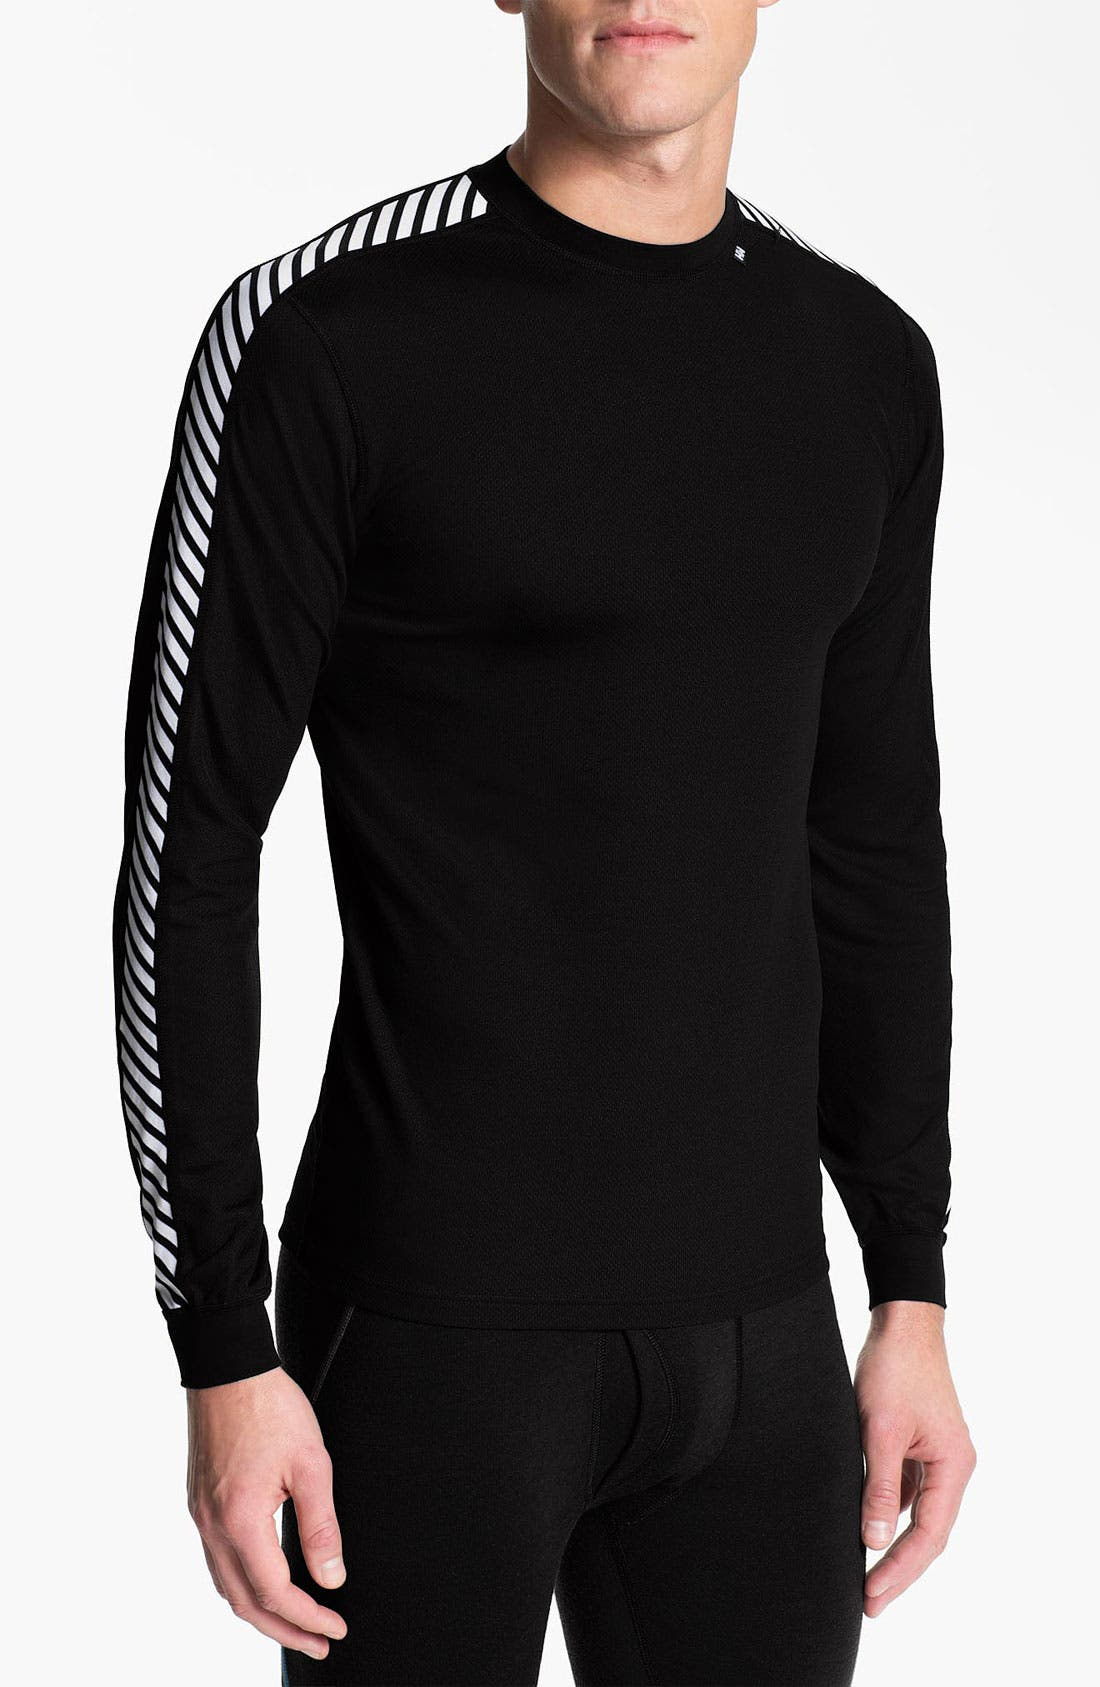 Alternate Image 1 Selected - Helly Hansen 'H/H® Dry - Stripe' Crewneck Top (Online Exclusive)